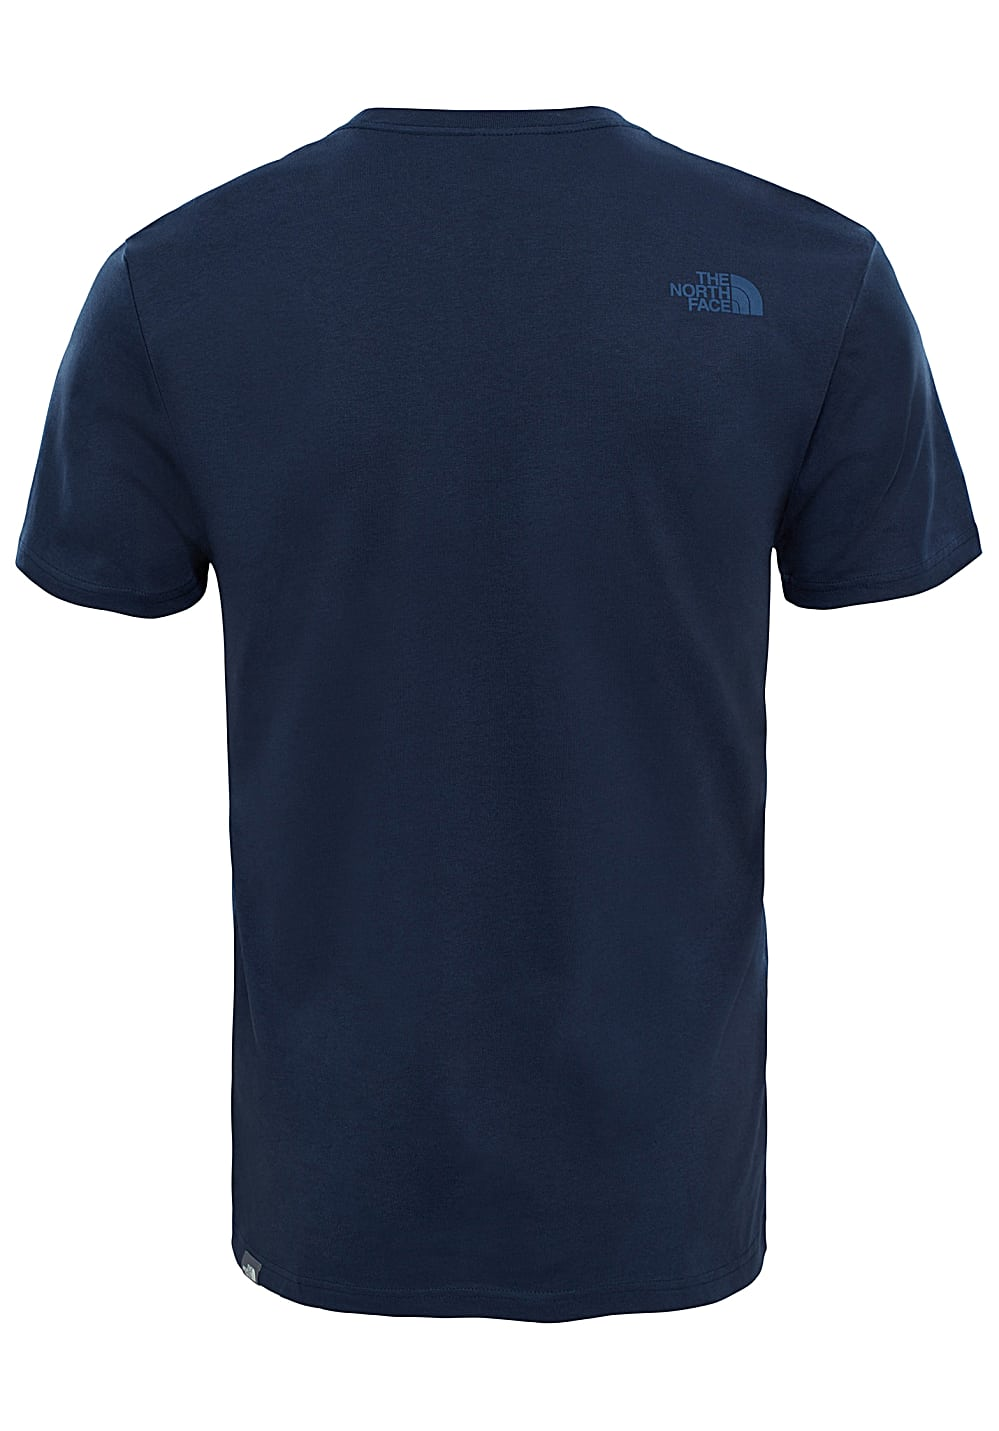 THE NORTH FACE Woodcut Dome - T-Shirt für Herren Blau